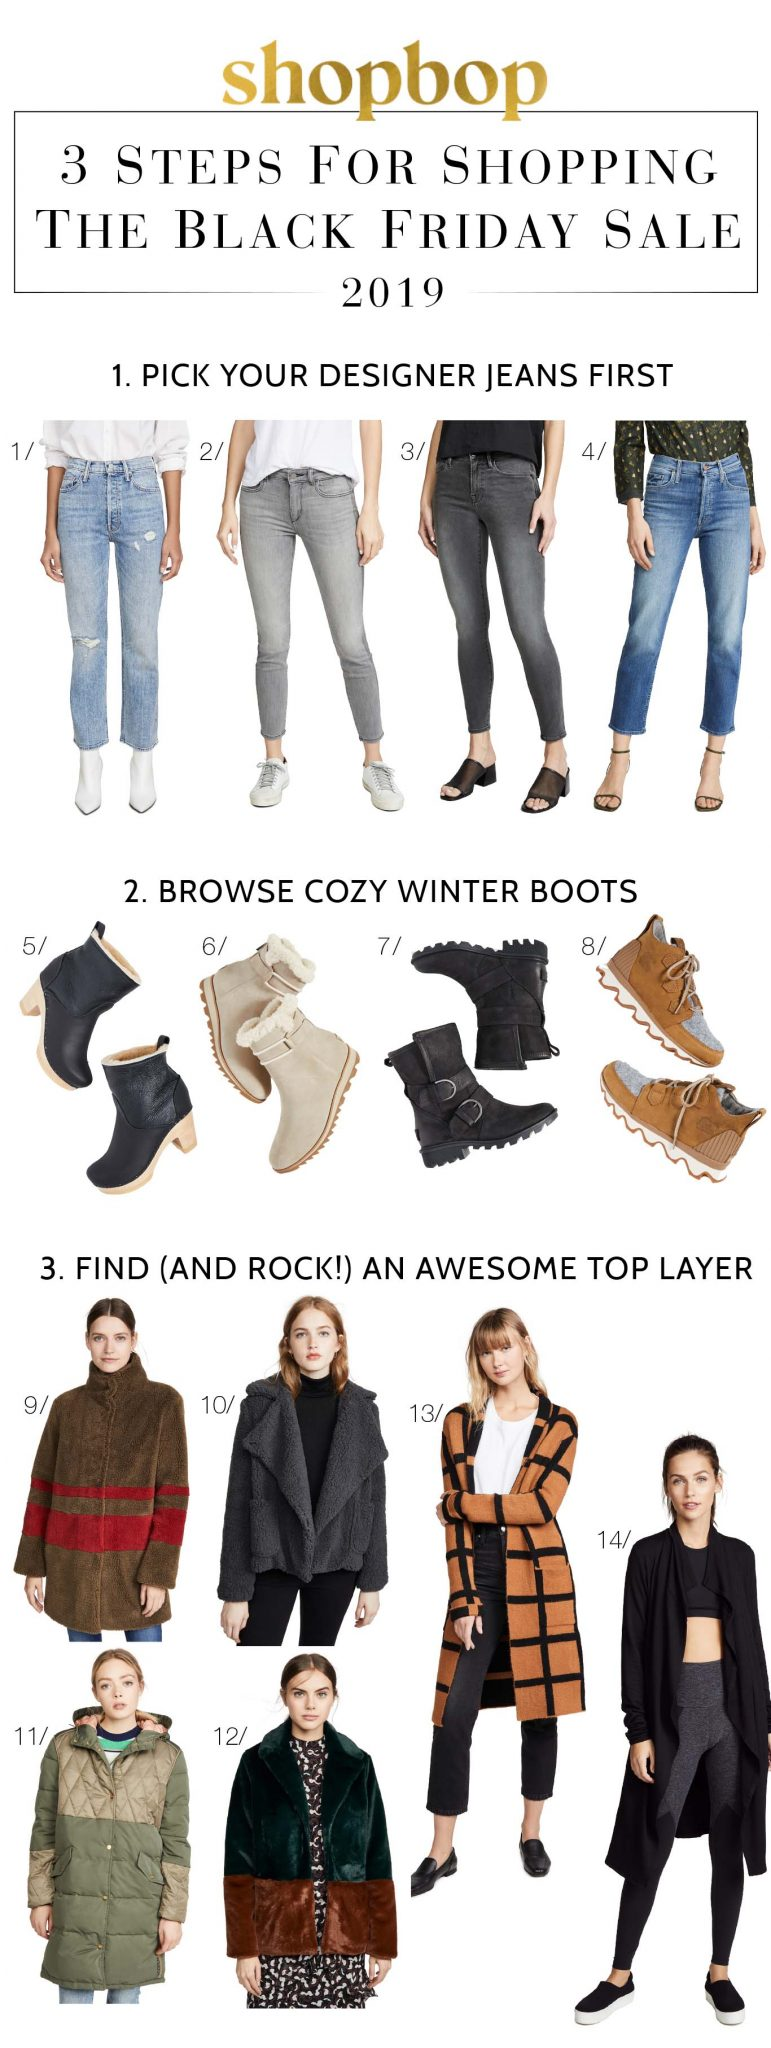 How To Shop Buy More, Save More At Shopbop? Just 3 steps: 1. Pick designer jeans 2. Add comfy shoes (or cozy boots) 3. Rock a fabulous top layer.